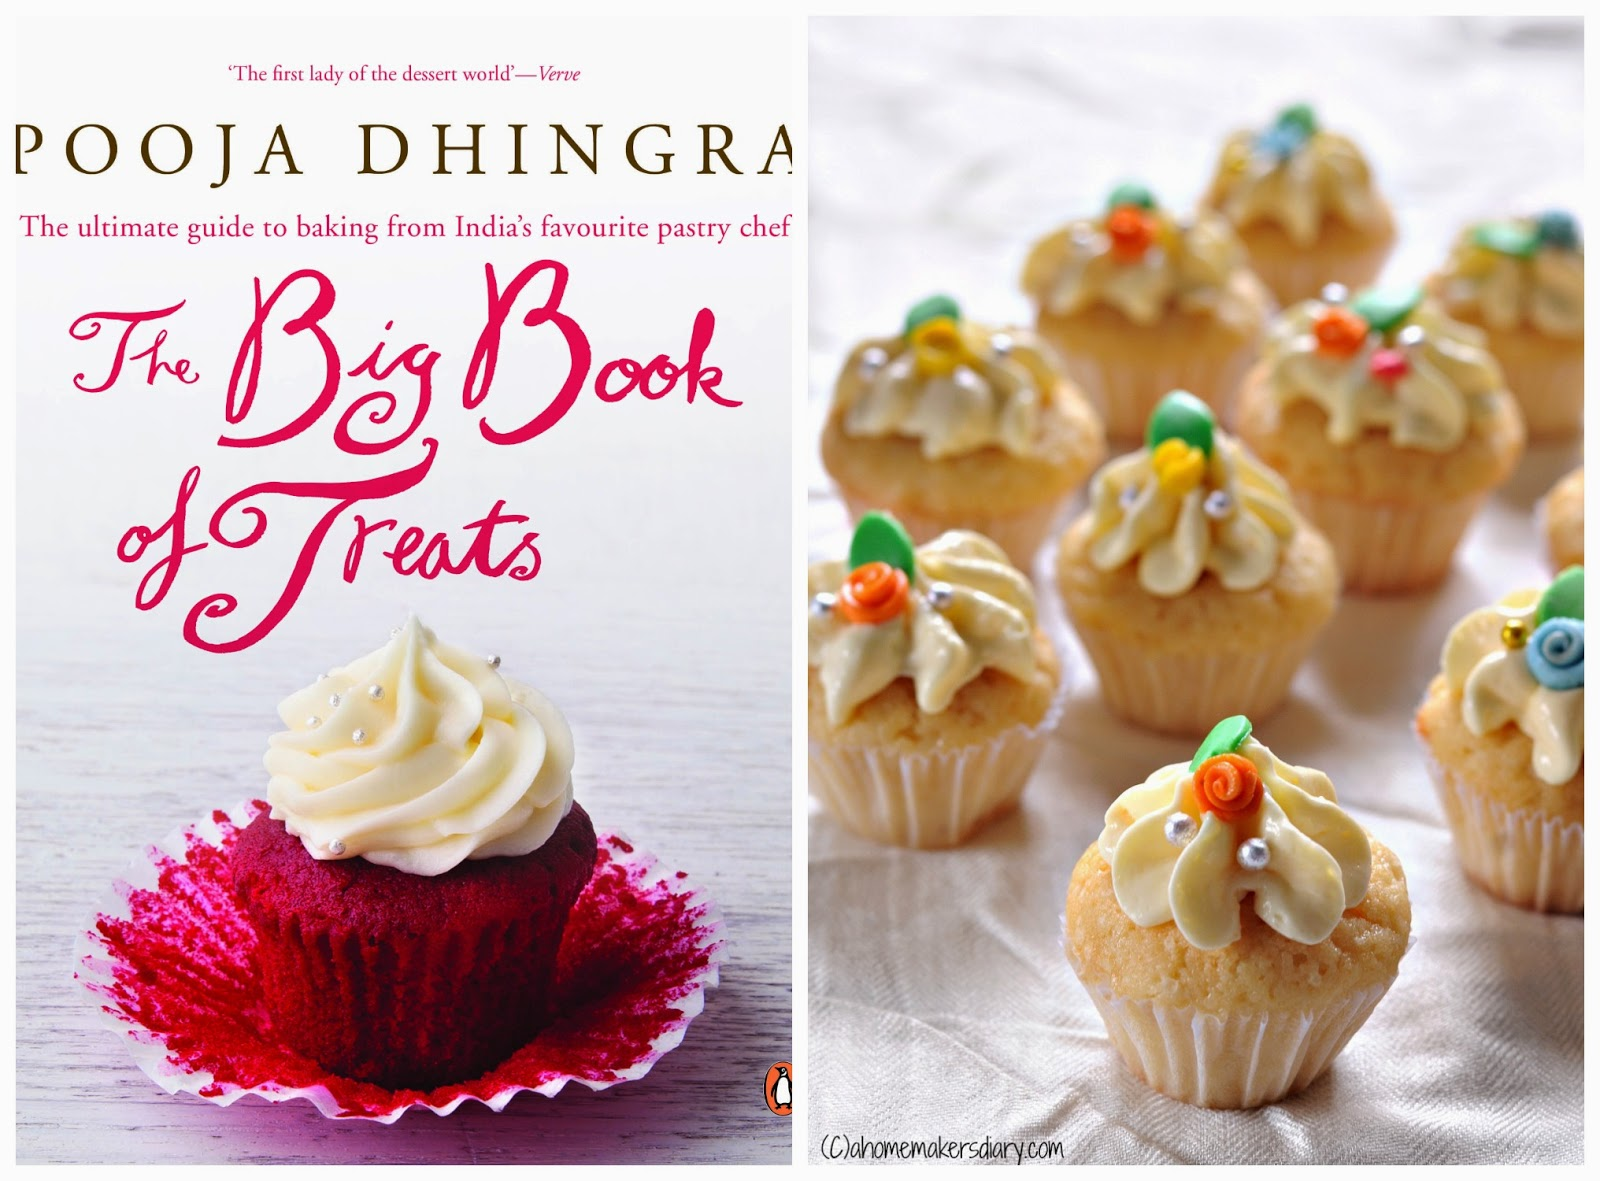 'the big book of treats' the book launch by pooja dhingra and some mini vanilla cupcakes